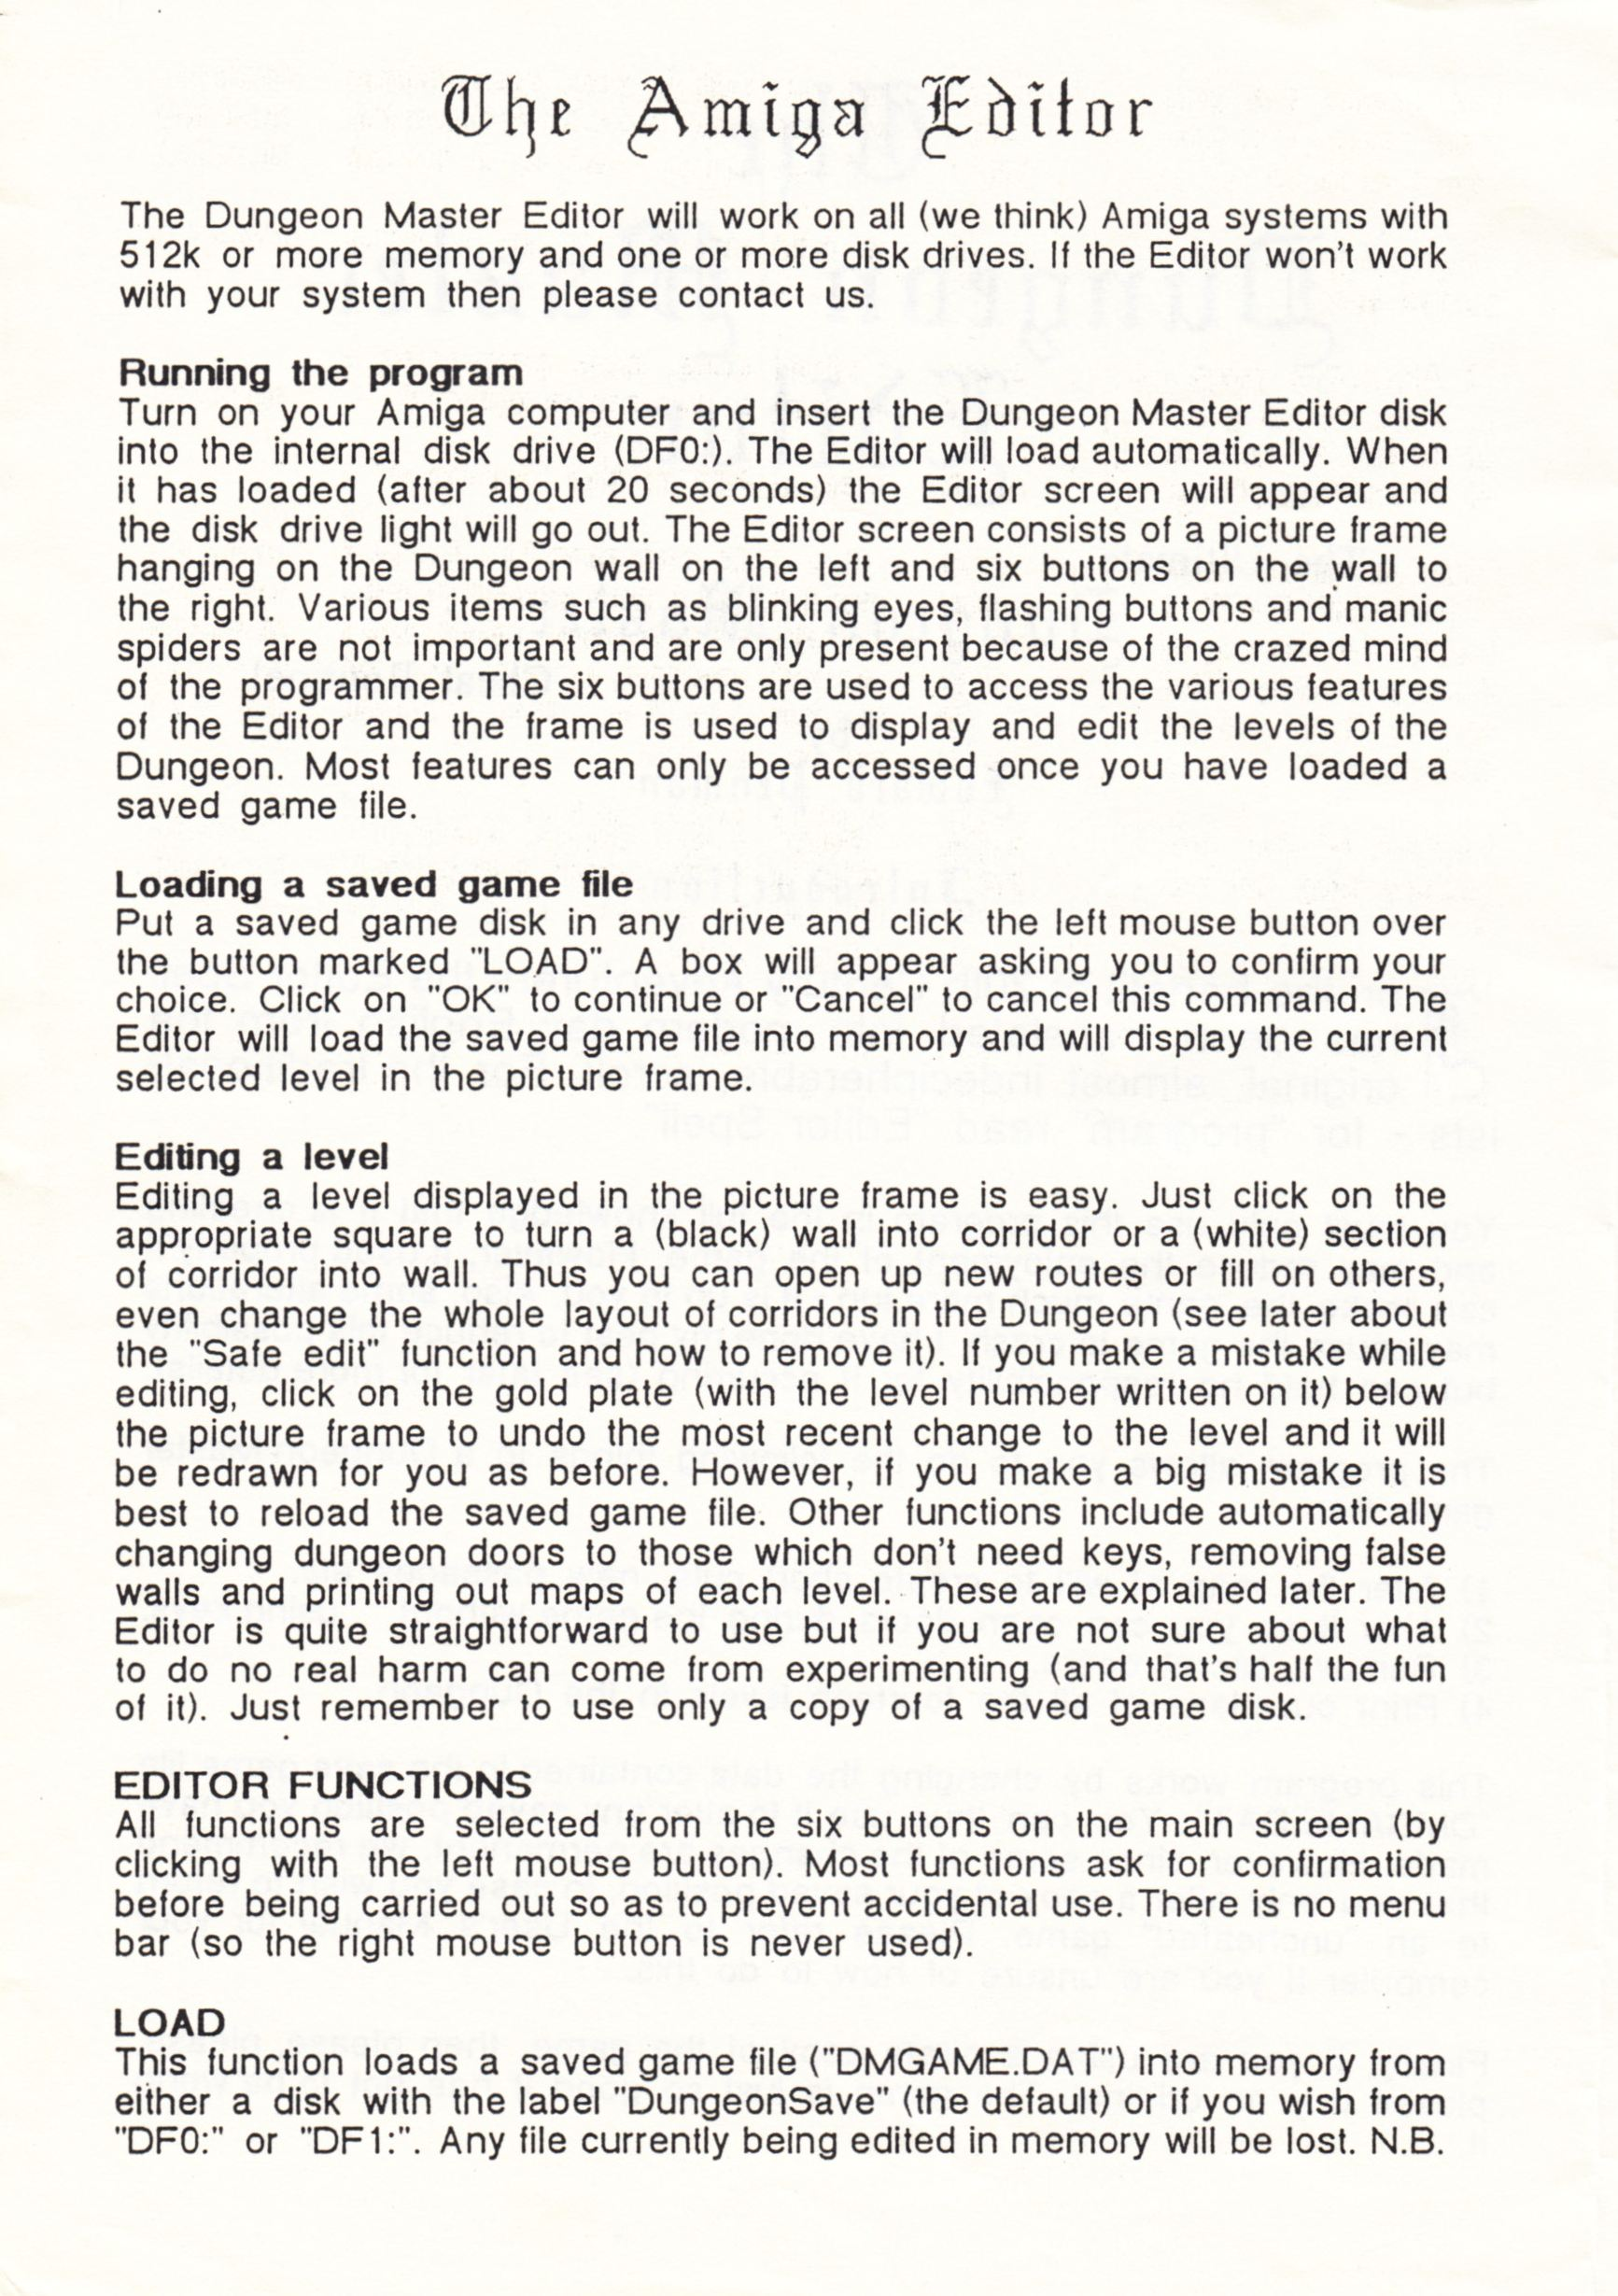 Tool - The Dungeon Master Editor - UK - Amiga - Amiga Manual - Page 002 - Scan